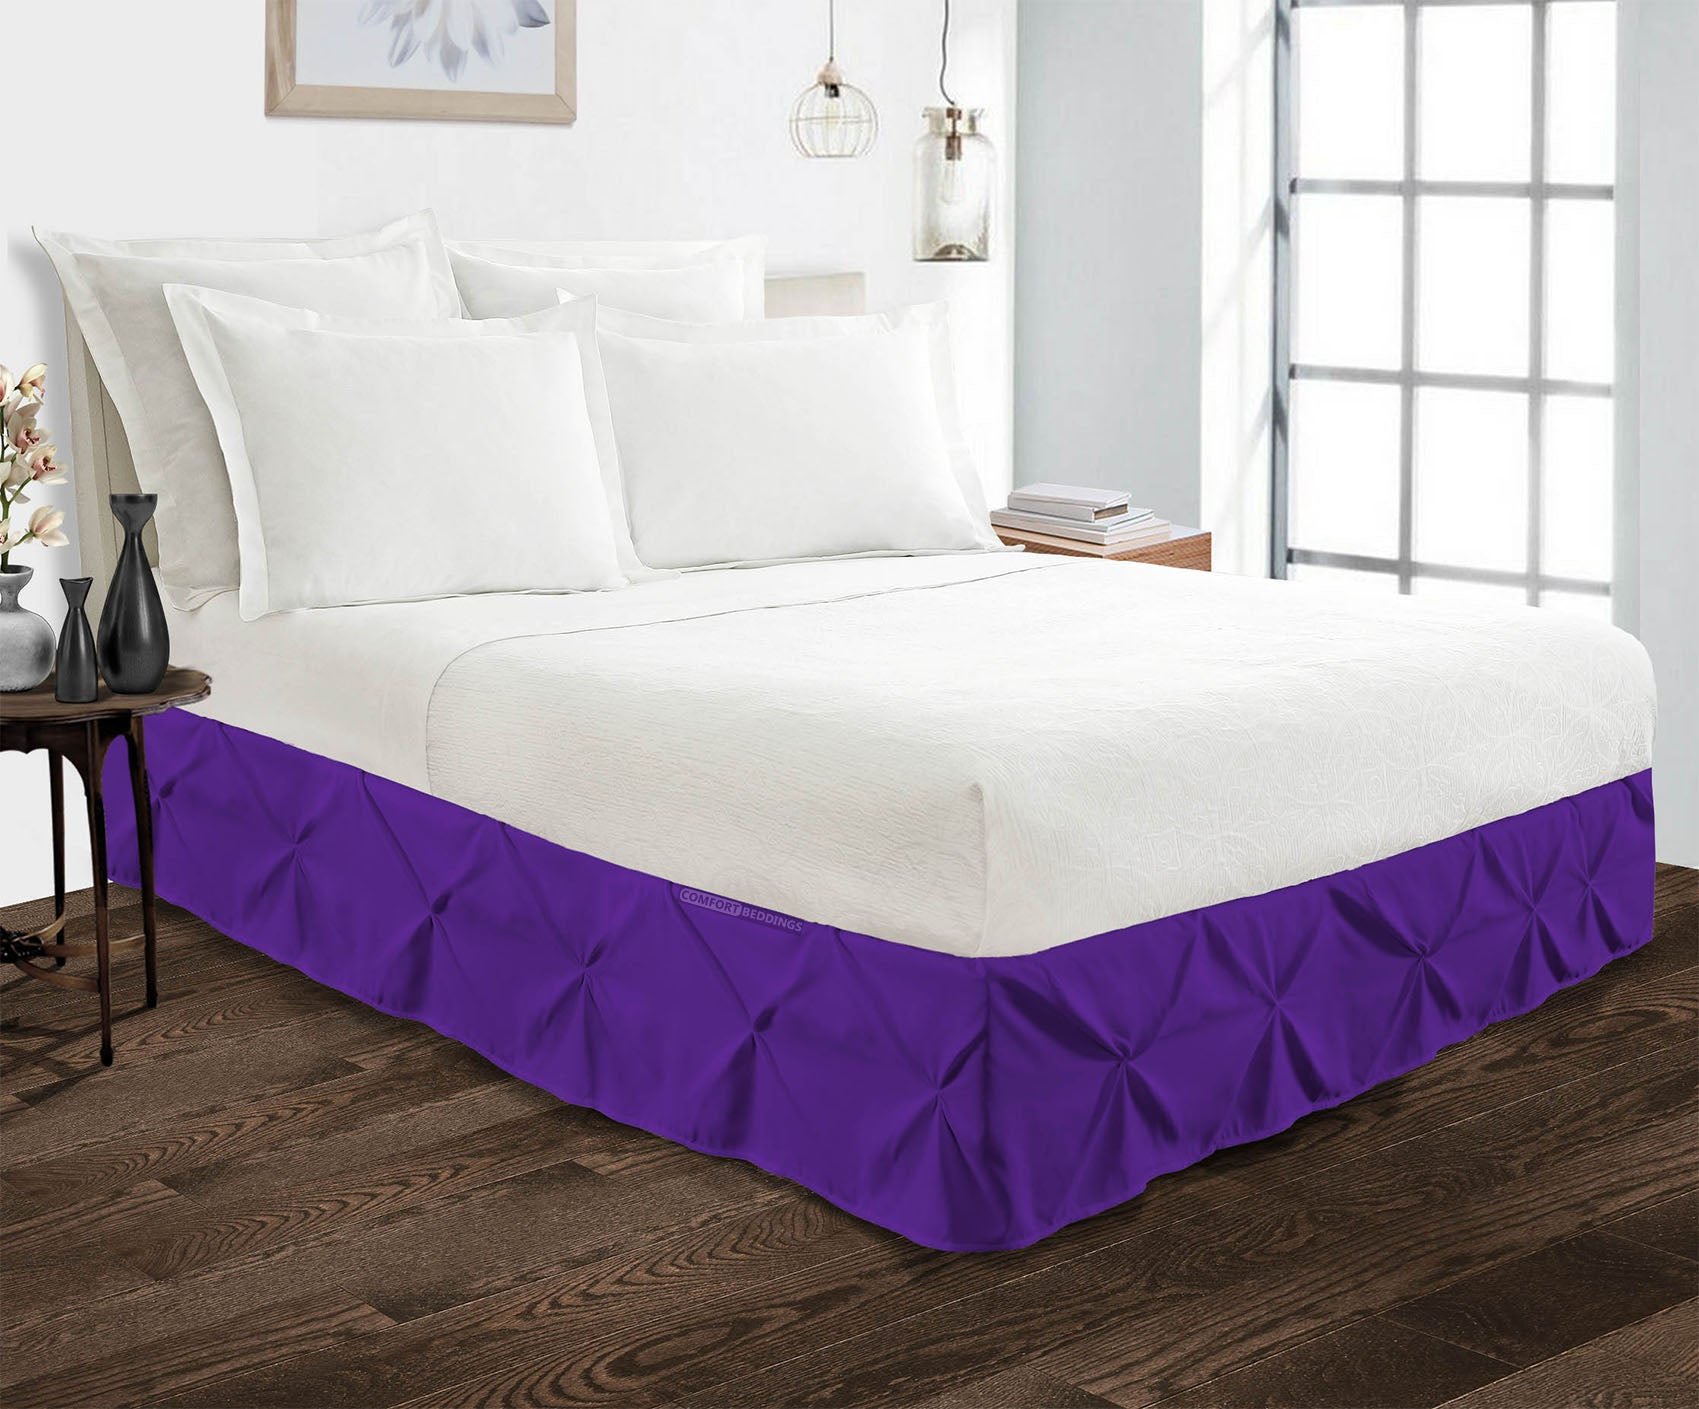 Luxurious Purple pinch pleated bed skirt